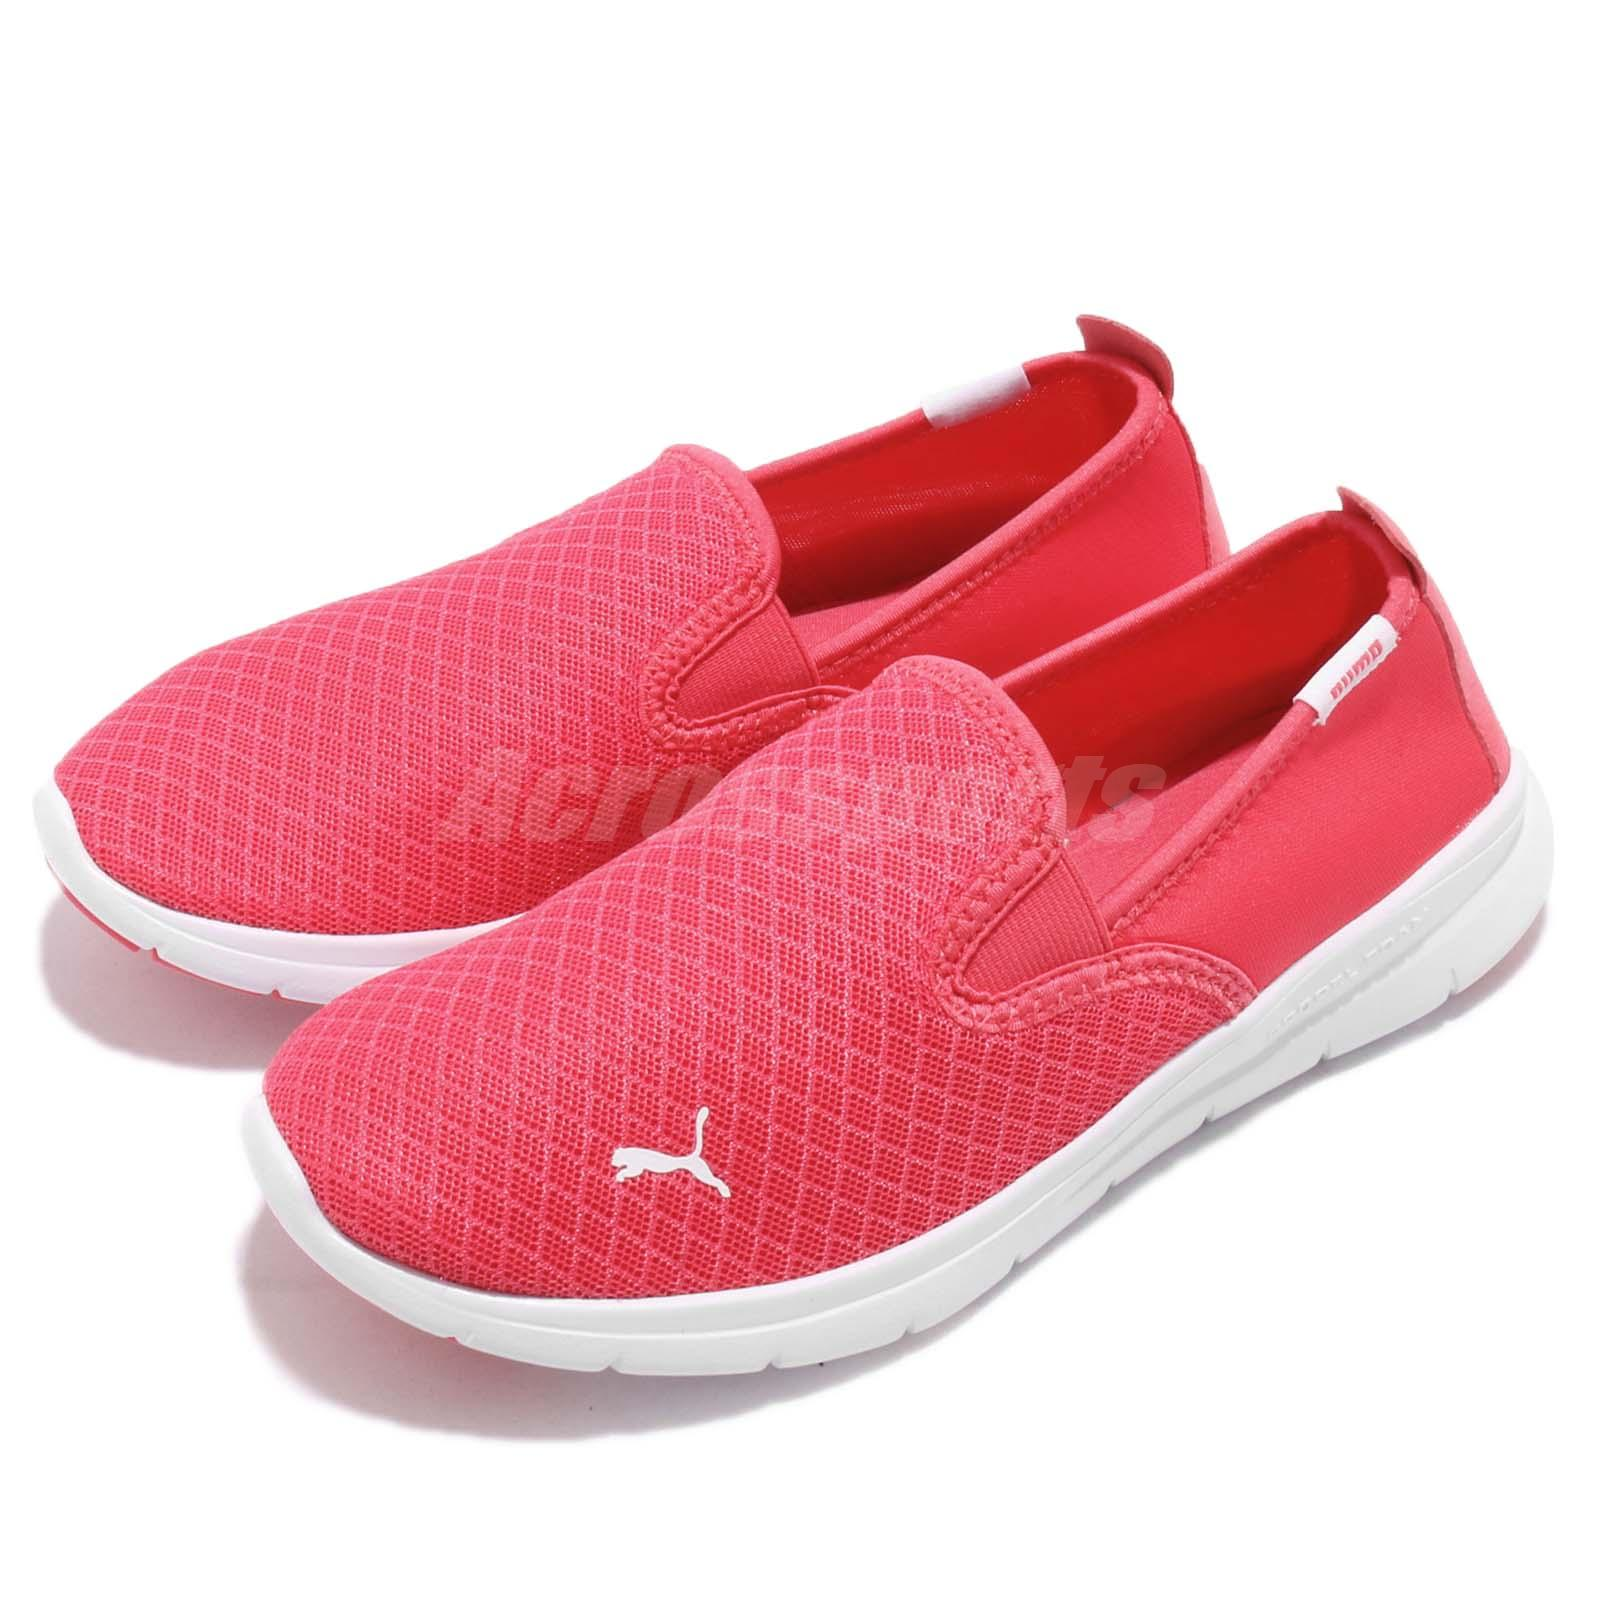 Détails sur Puma Flex Essential Slip On Paradise Pink White Men Women Shoe Sneaker 365273 03